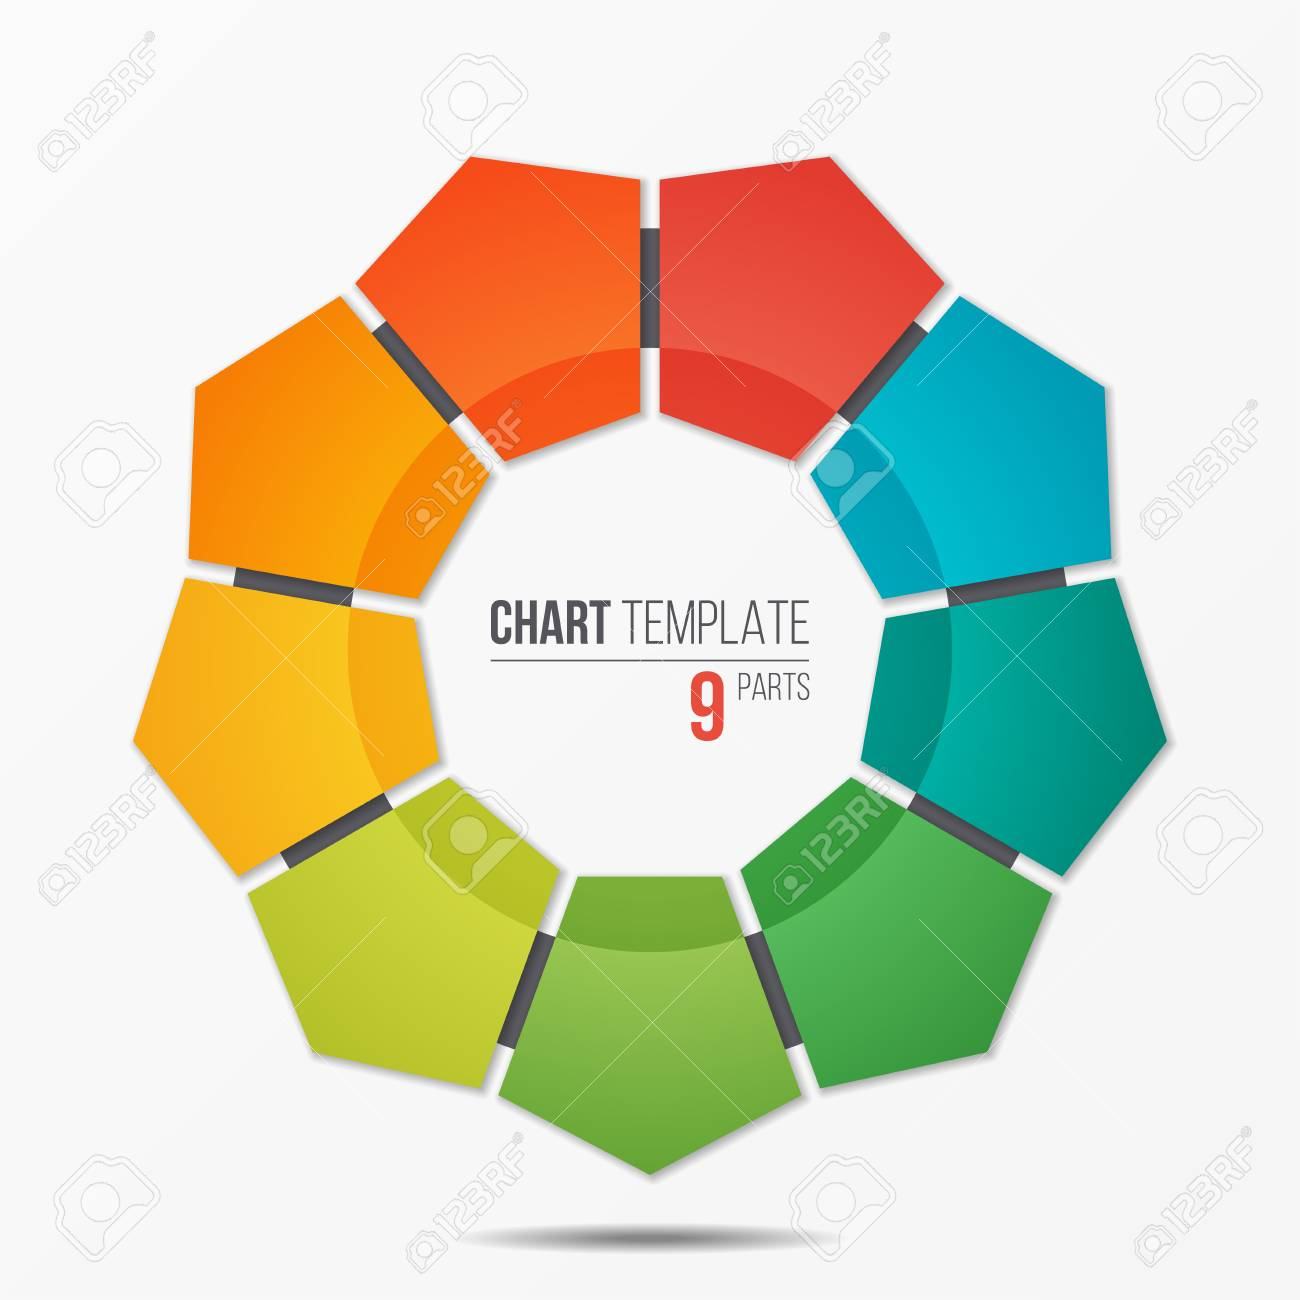 polygonal circle chart infographic template with 9 parts royalty